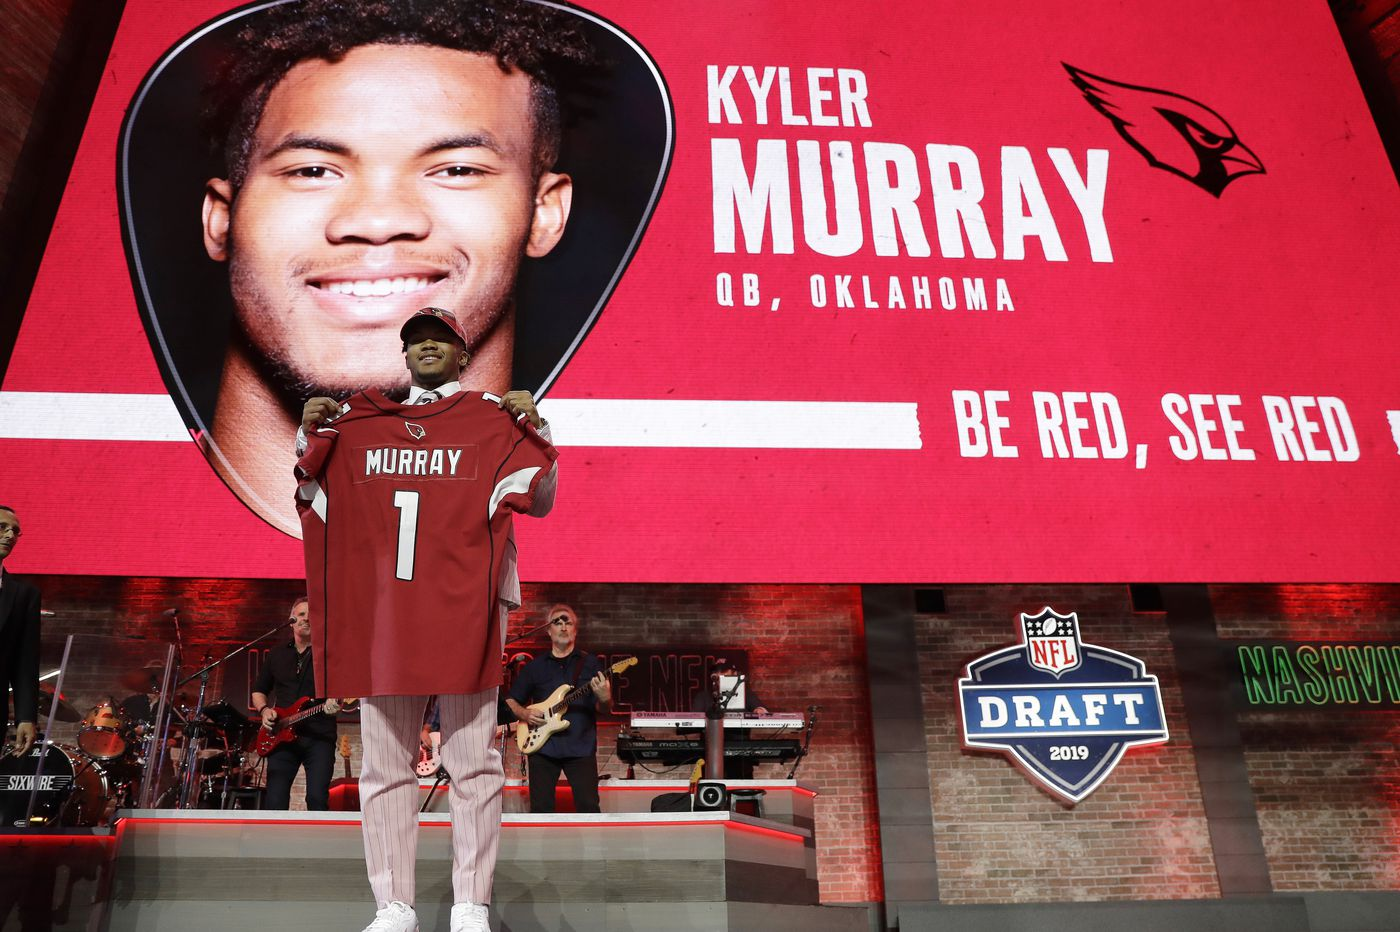 NFL draft 2019: Cardinals make Kyler Murray first overall pick, Giants and Redskins get their QBs, too